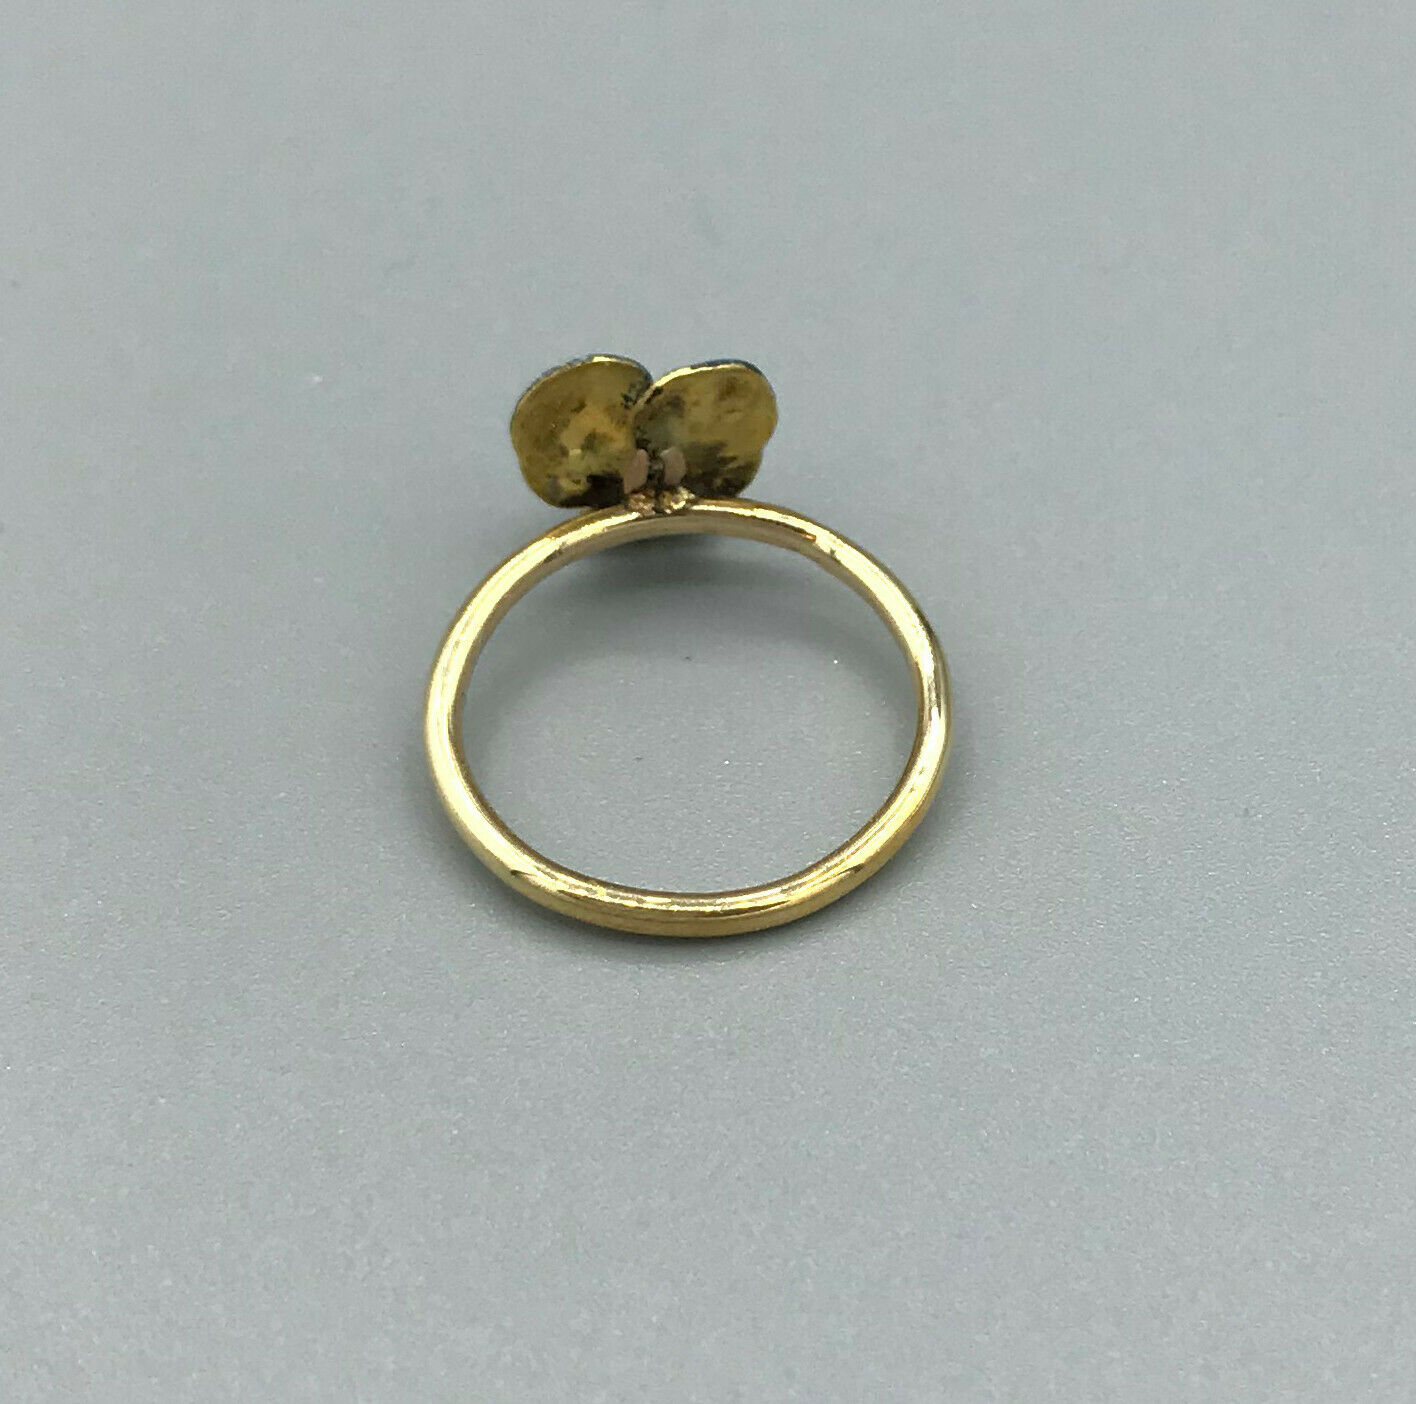 Victorian Pansy enamel ring 14kt pin conversion a… - image 4